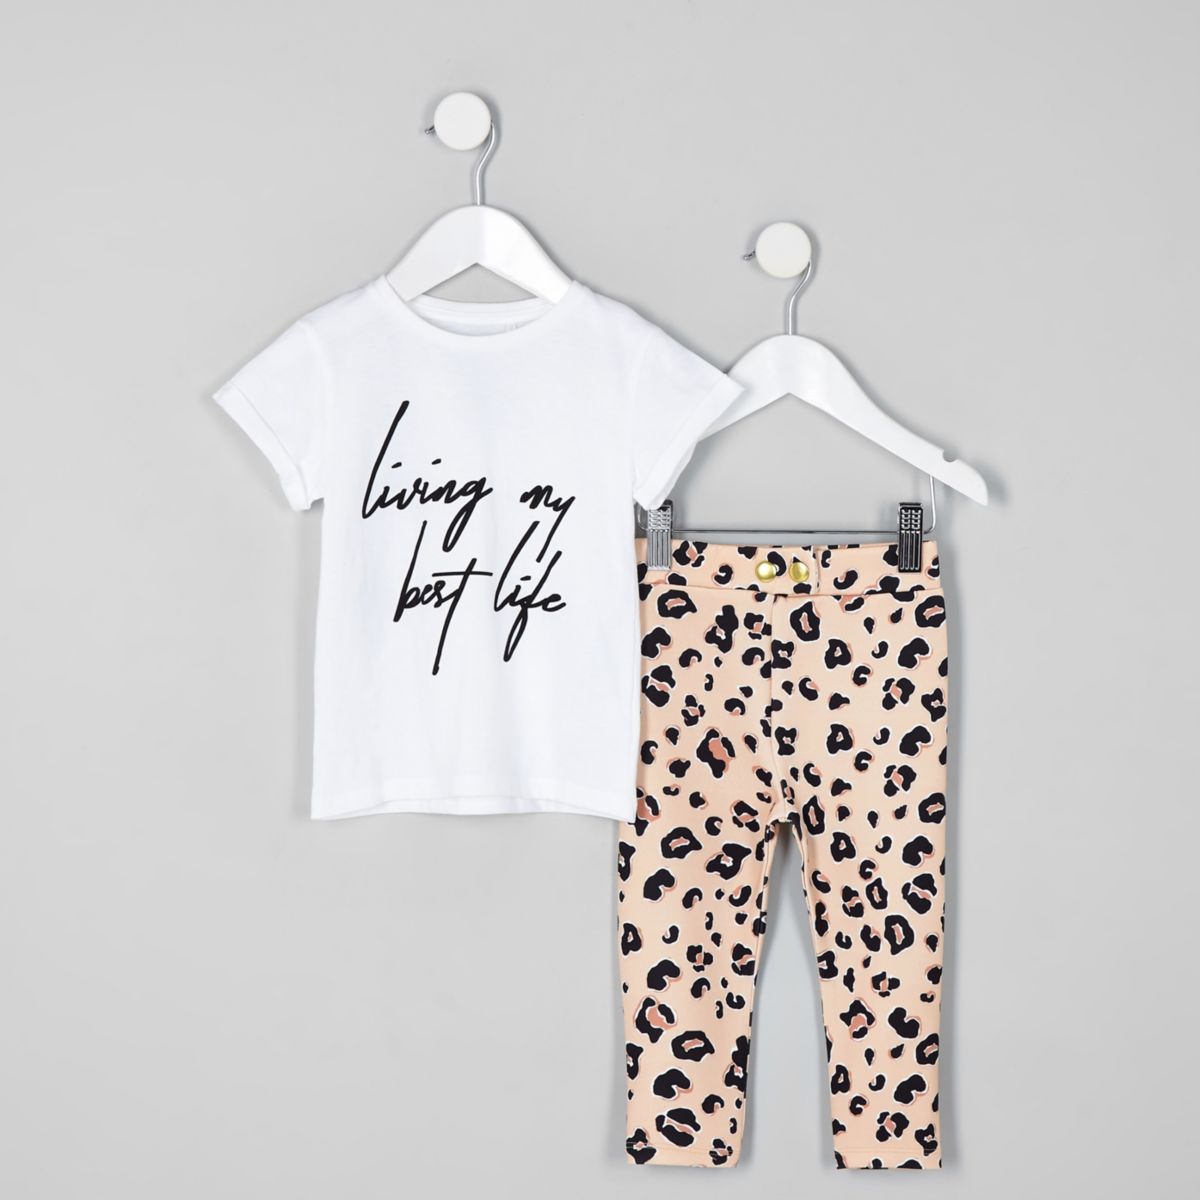 Mini girls white T-shirt and legging outfit